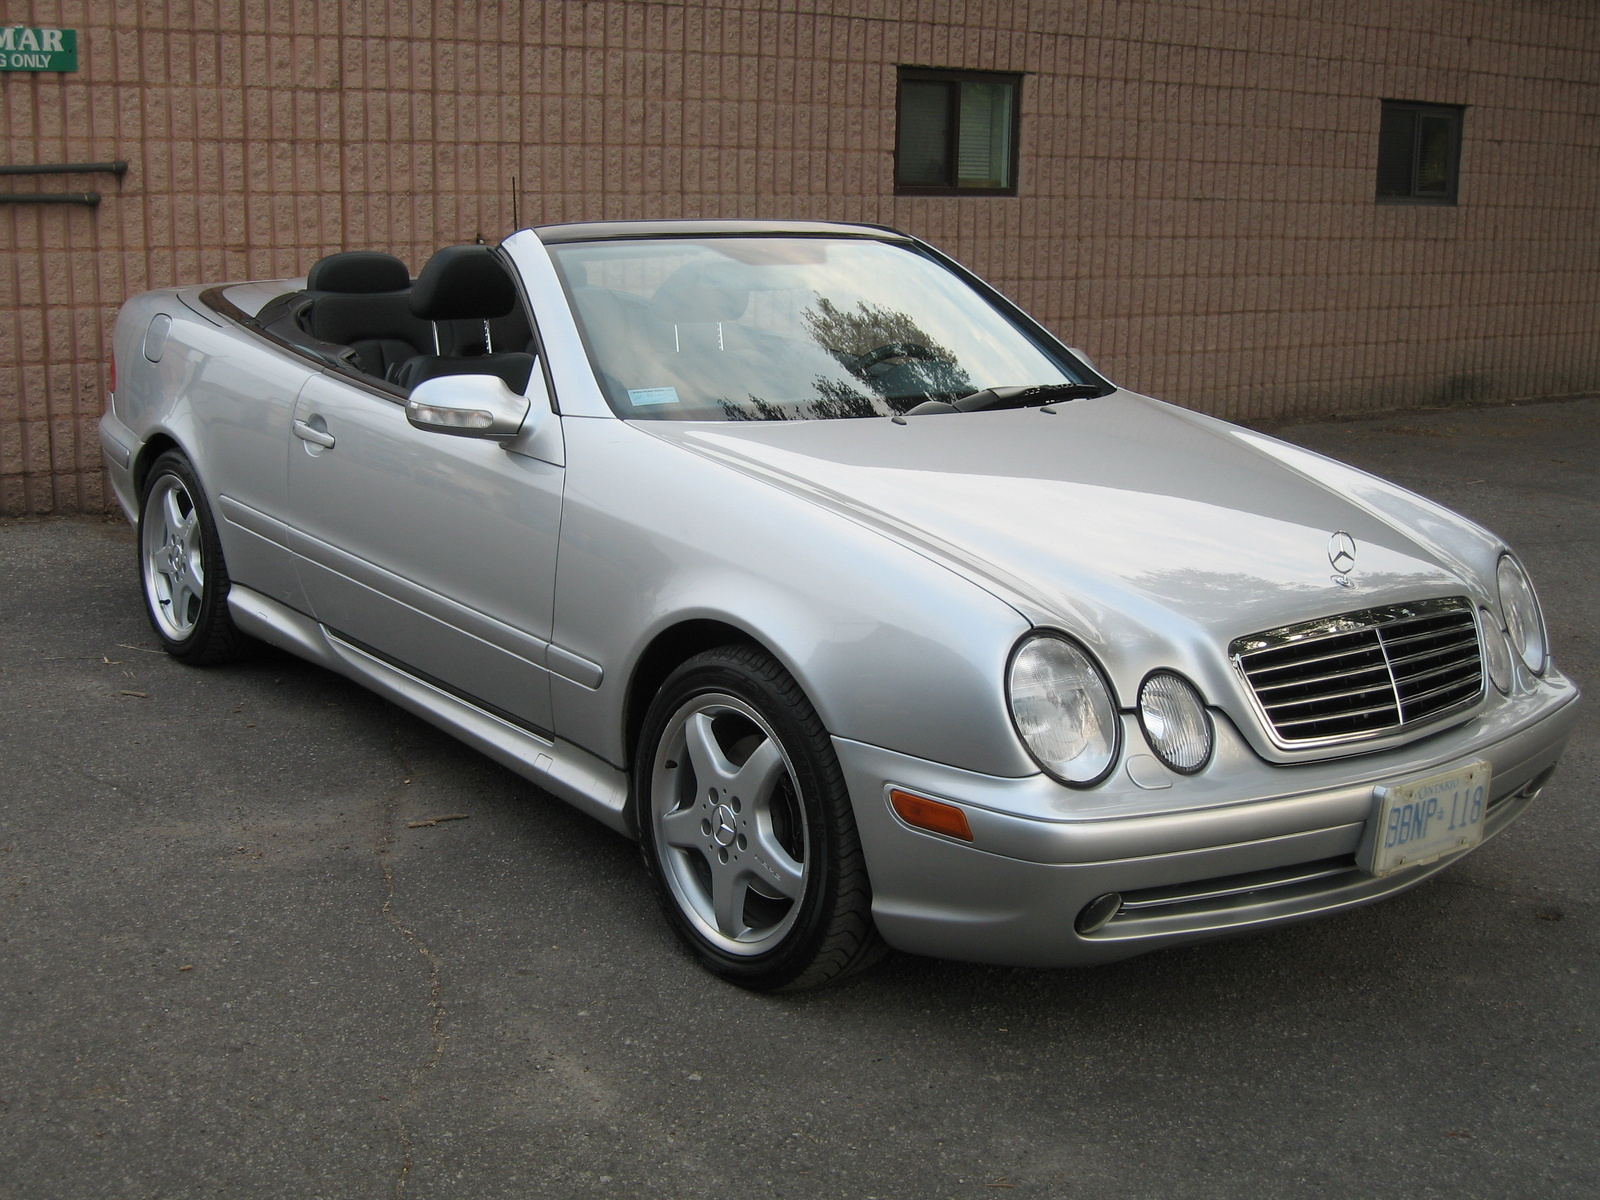 2003 mercedes benz clk class exterior pictures cargurus for 2003 mercedes benz clk